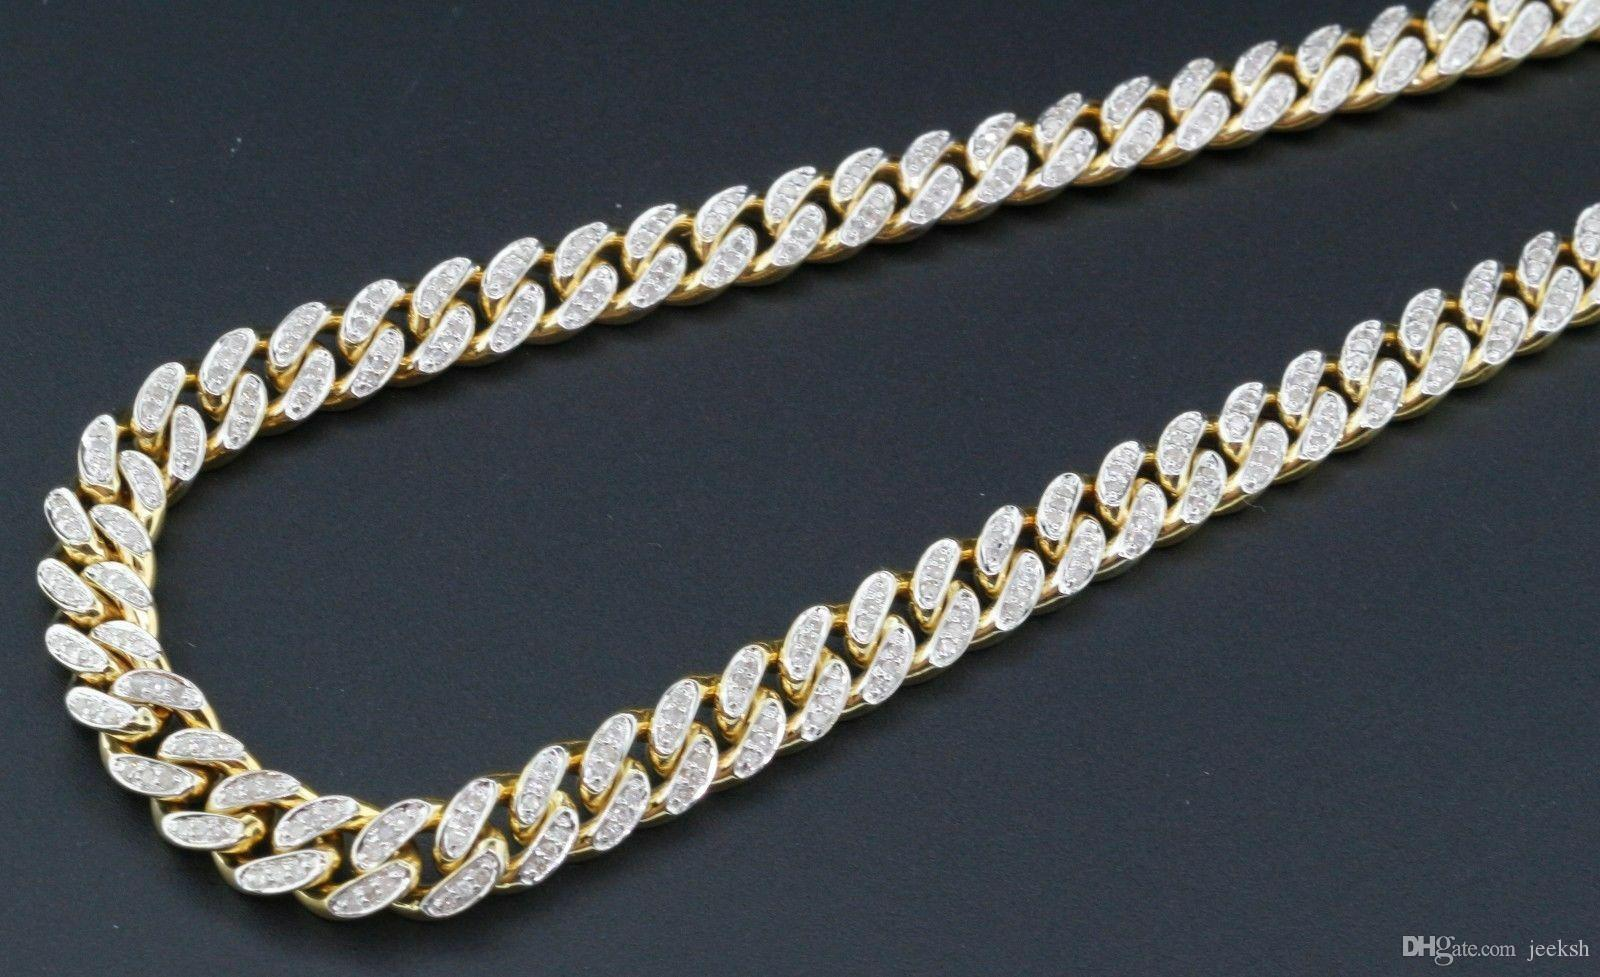 Genuine Diamond Miami Cuban Chain 3 Ct. 10K Yellow Gold 6.25mm 26 Inch Necklace